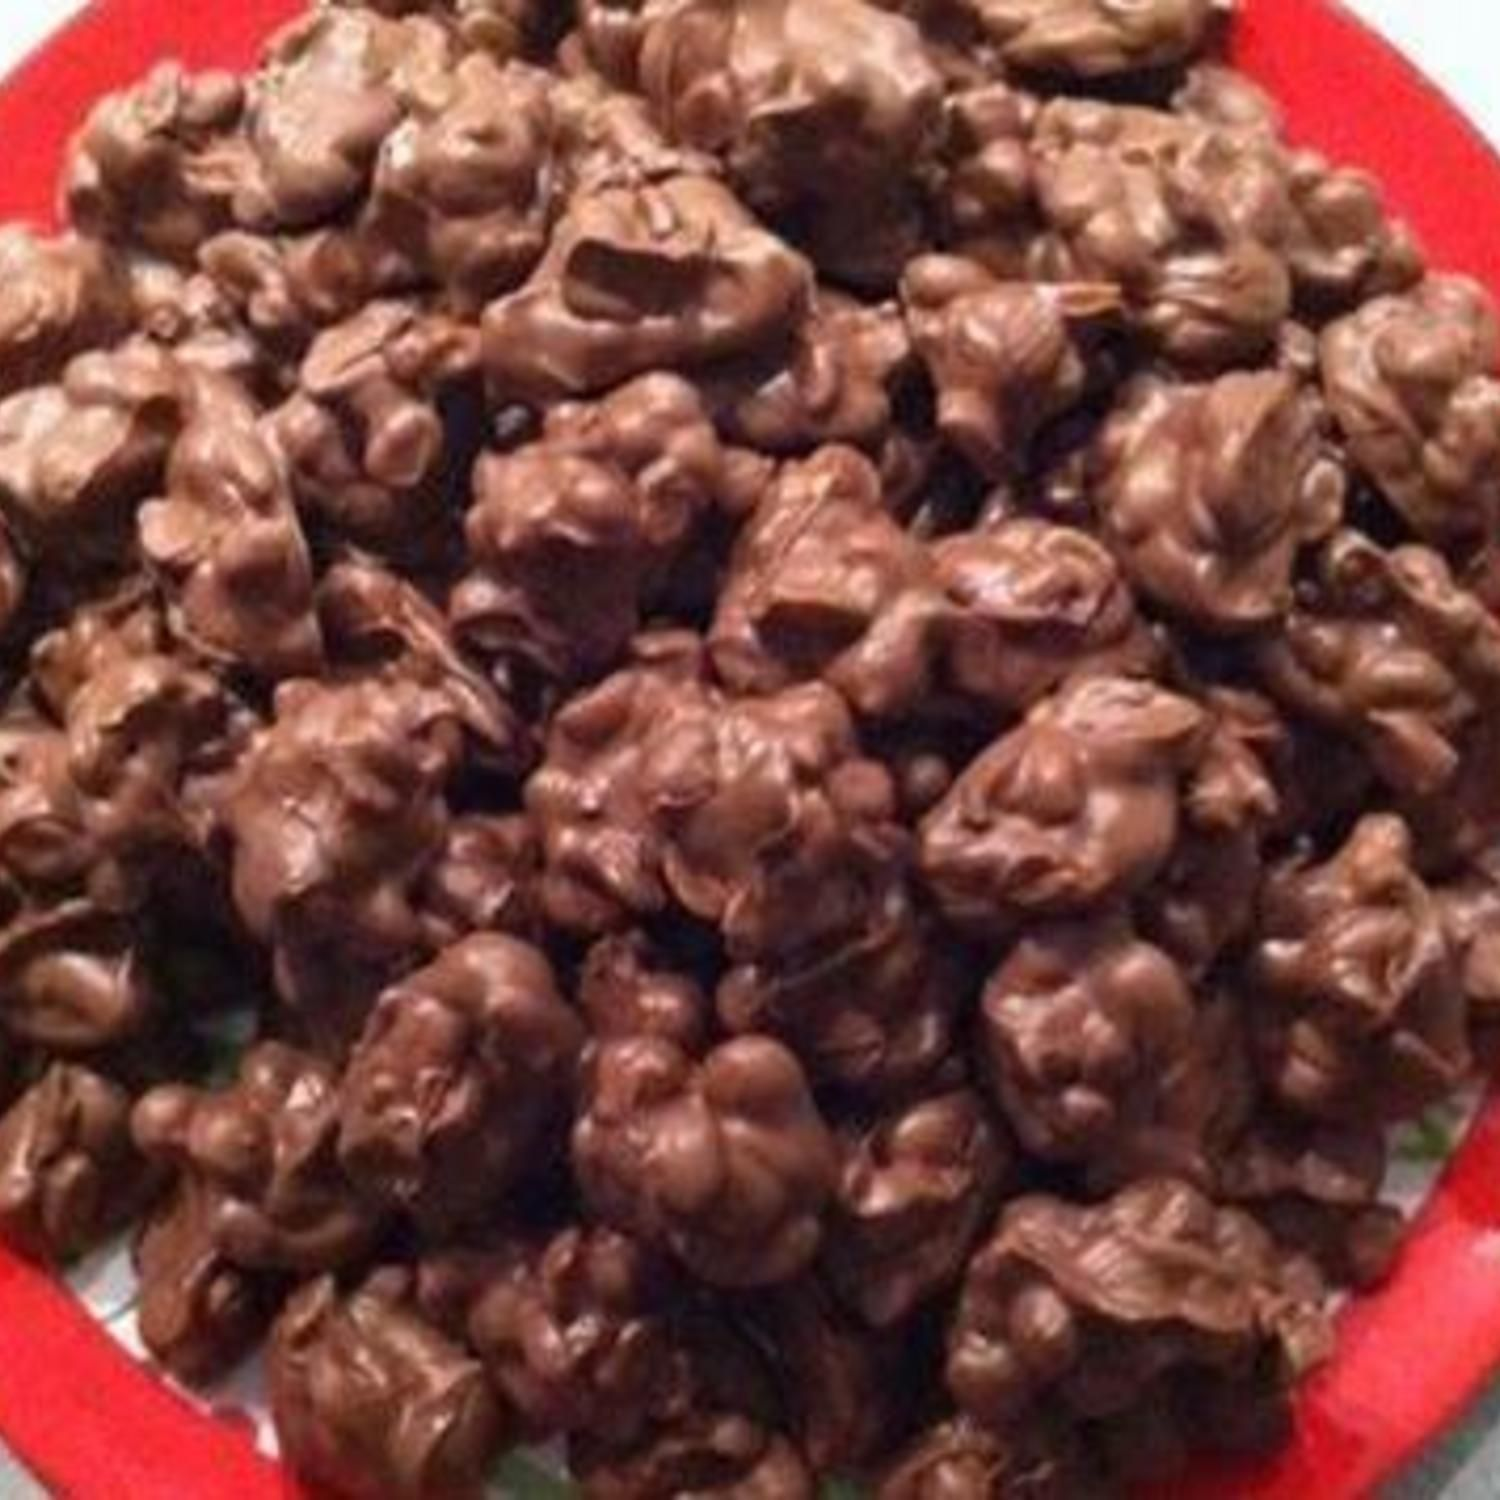 Crockpot Christmas Crack | Recipe | Crockpot christmas crack ...